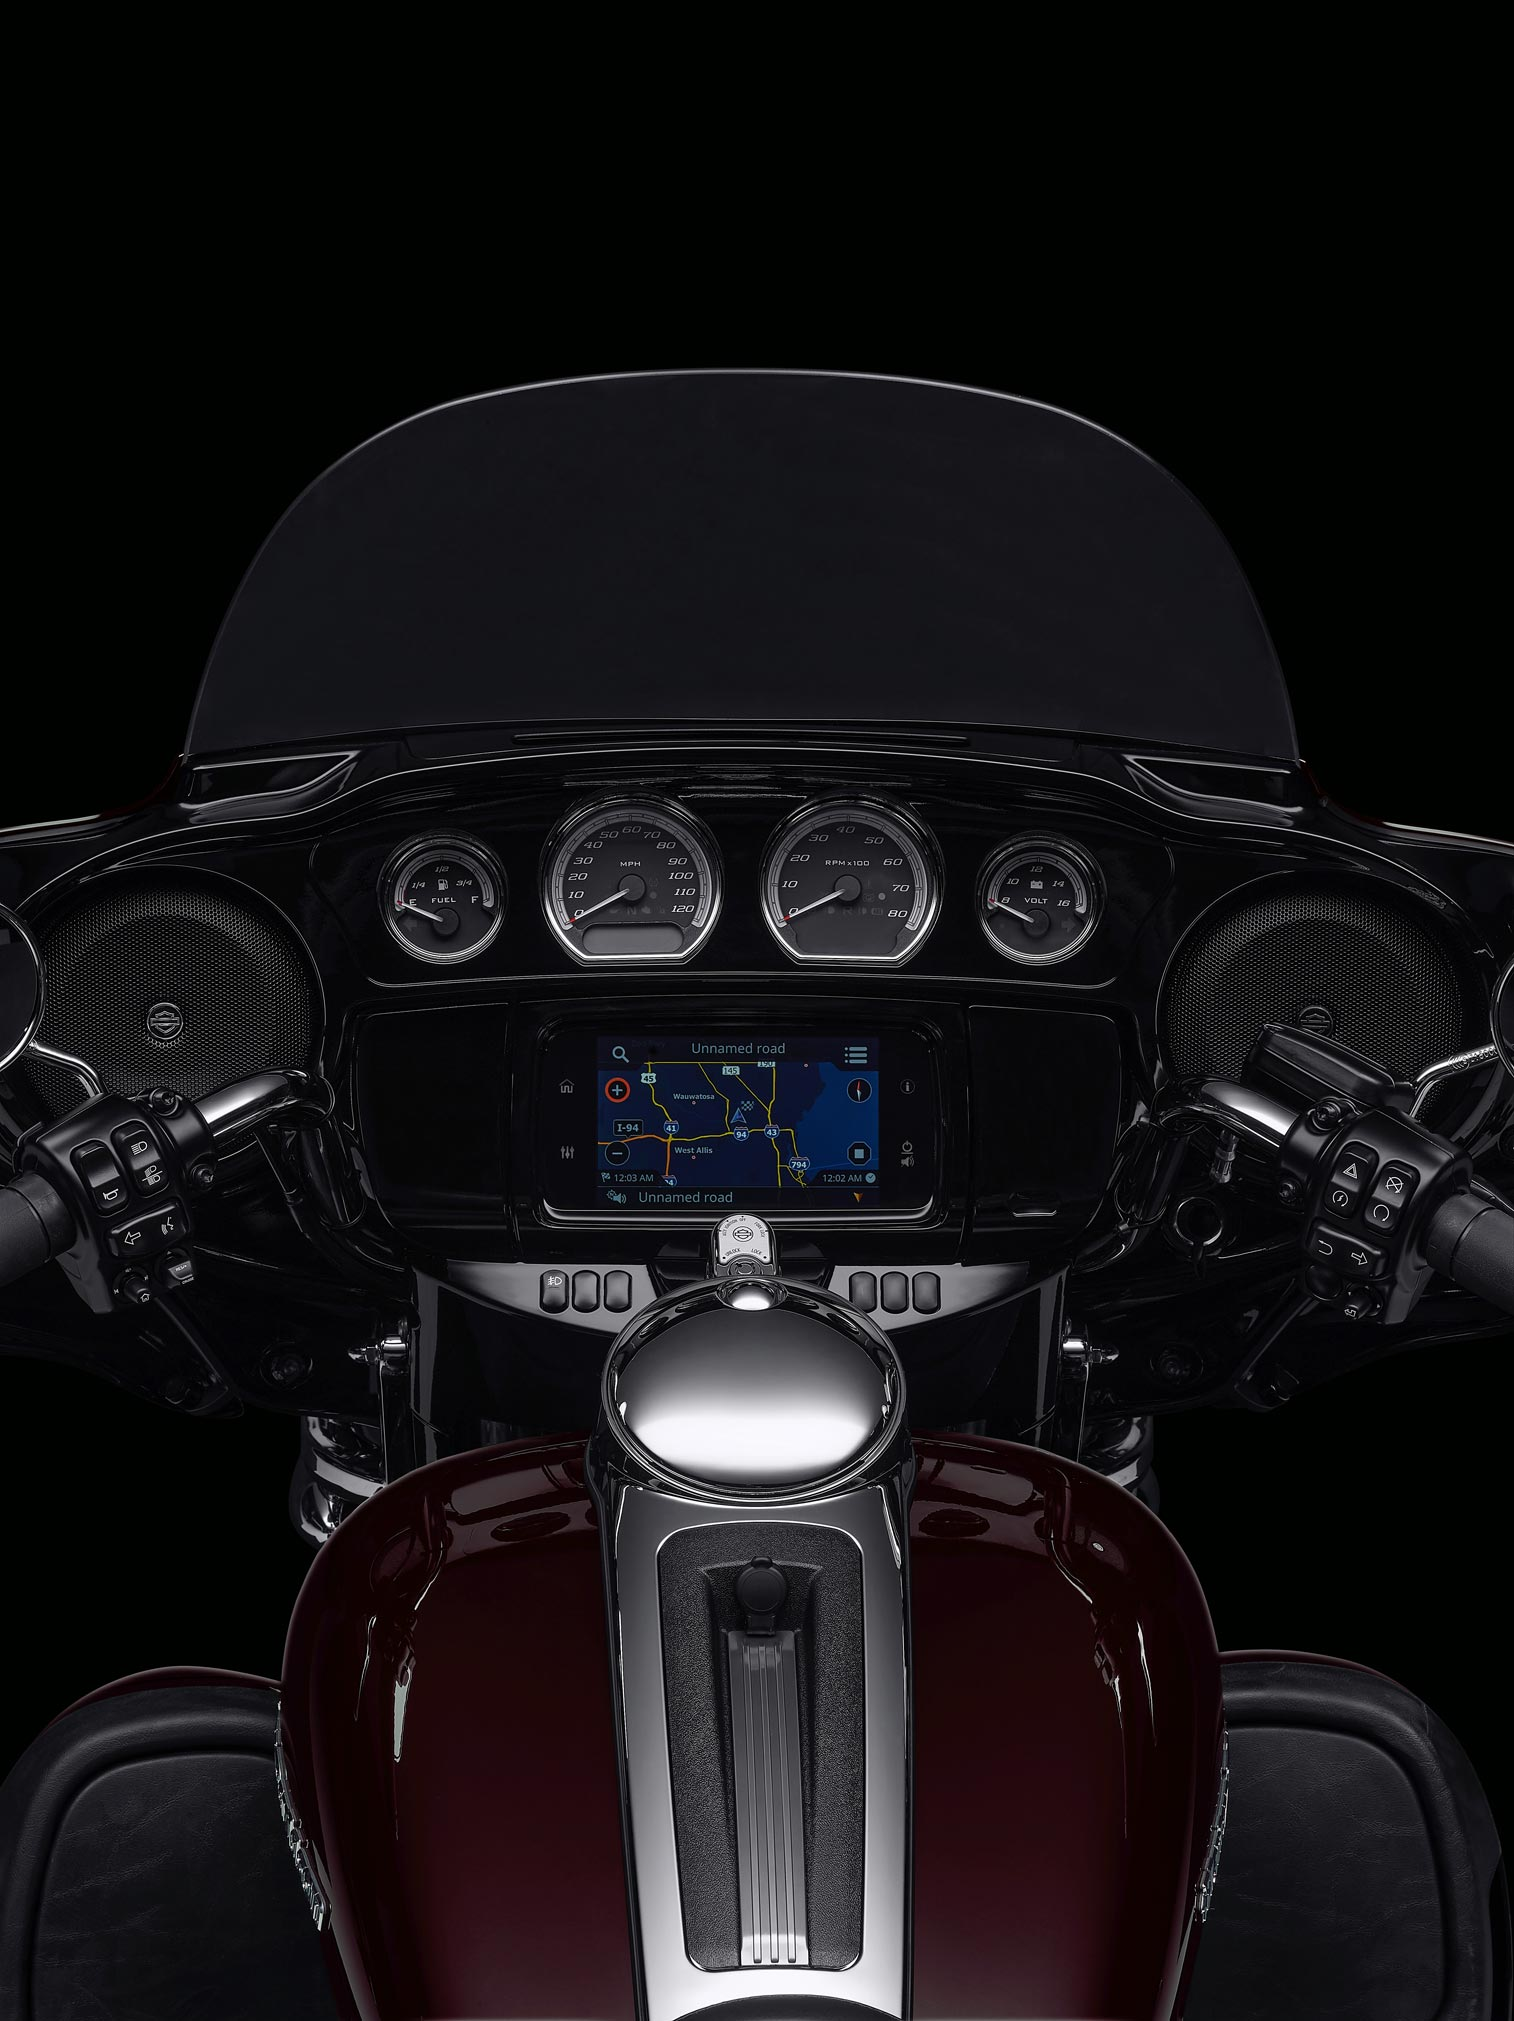 Custom Ultra Limited : custom, ultra, limited, Harley-Davidson, Ultra, Limited, Guide, Total, Motorcycle